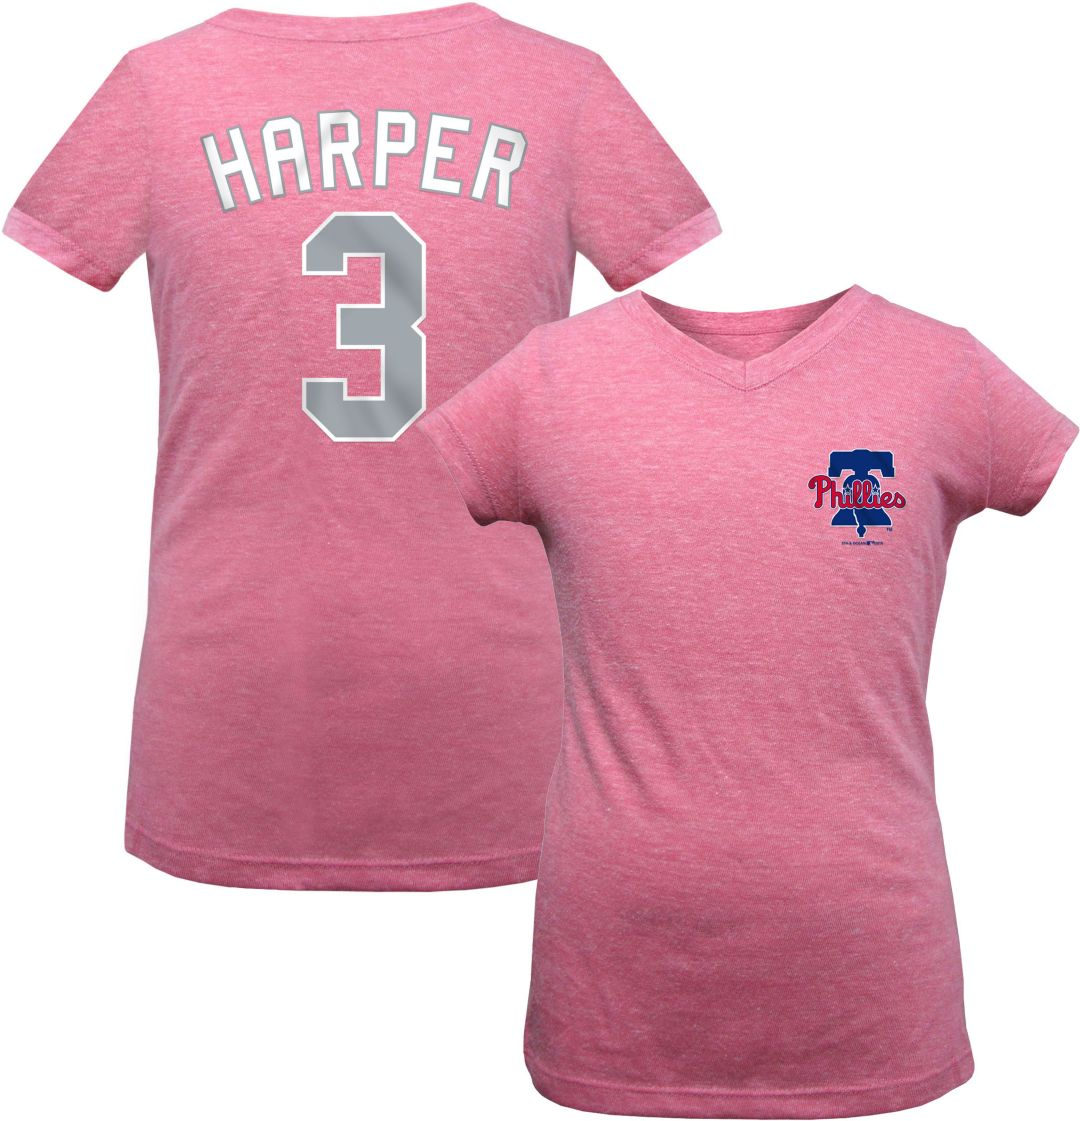 on sale ab432 8390c New Era Youth Girls' Philadelphia Phillies Bryce Harper Tri-Blend T-Shirt